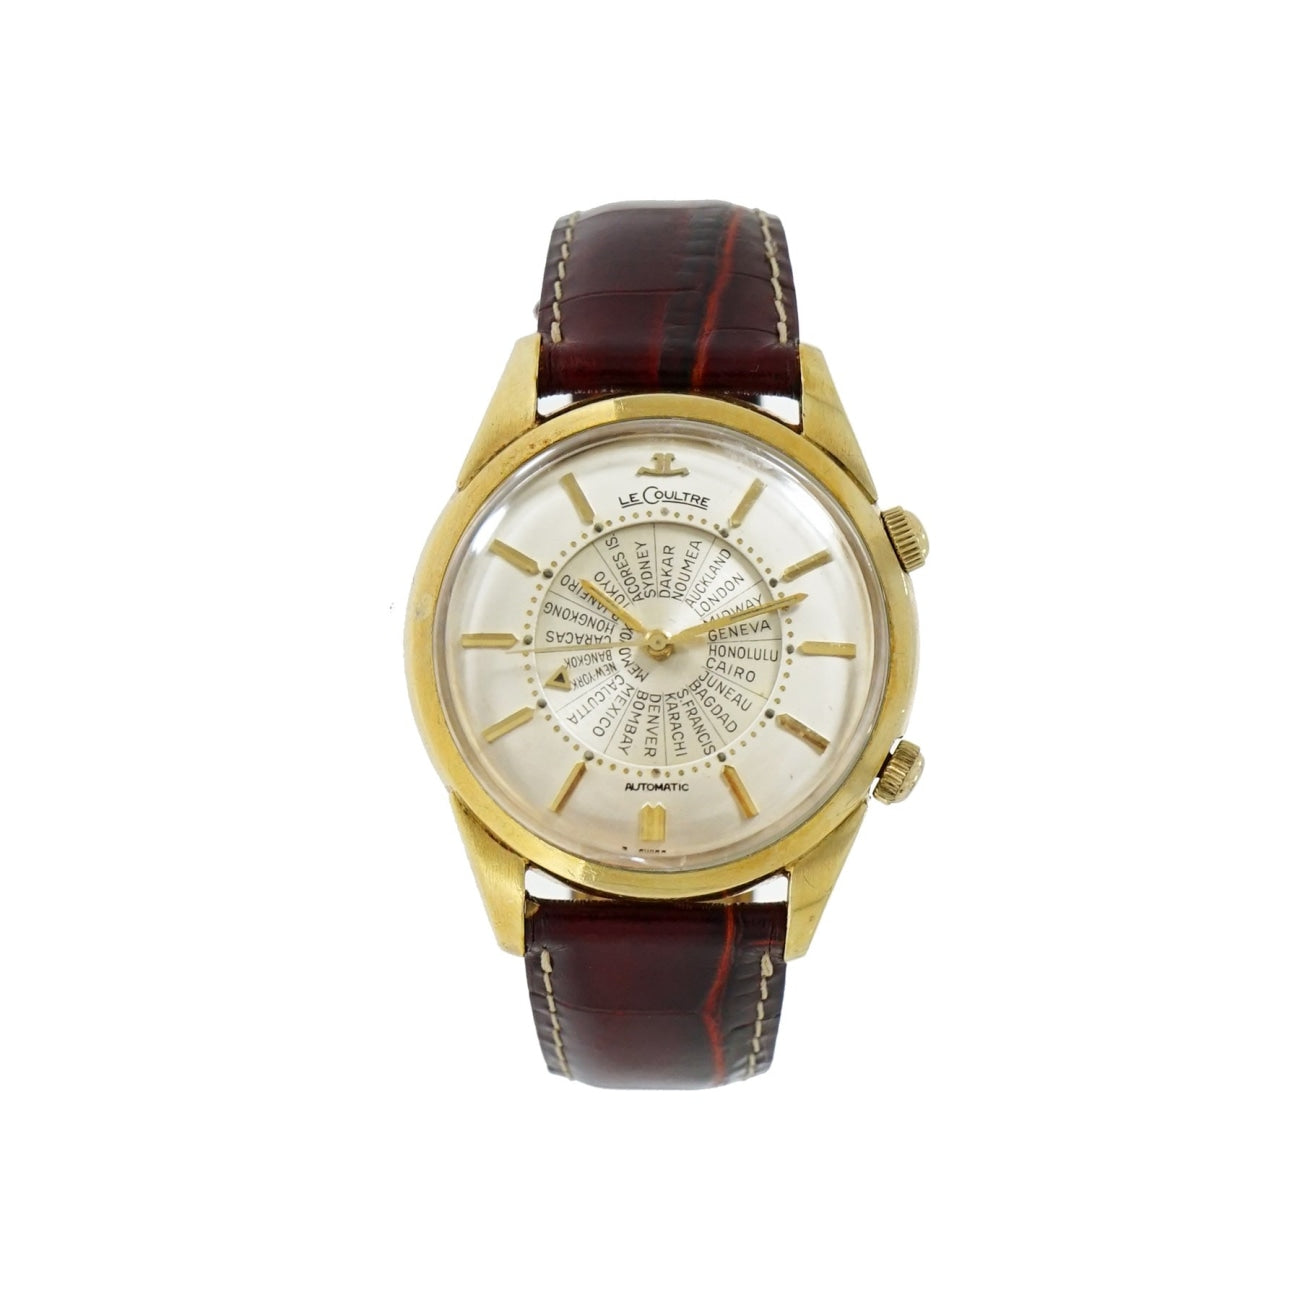 Pre-Owned Jaeger le Coultre Pre-Owned Watches - Memovox | Manfredi Jewels